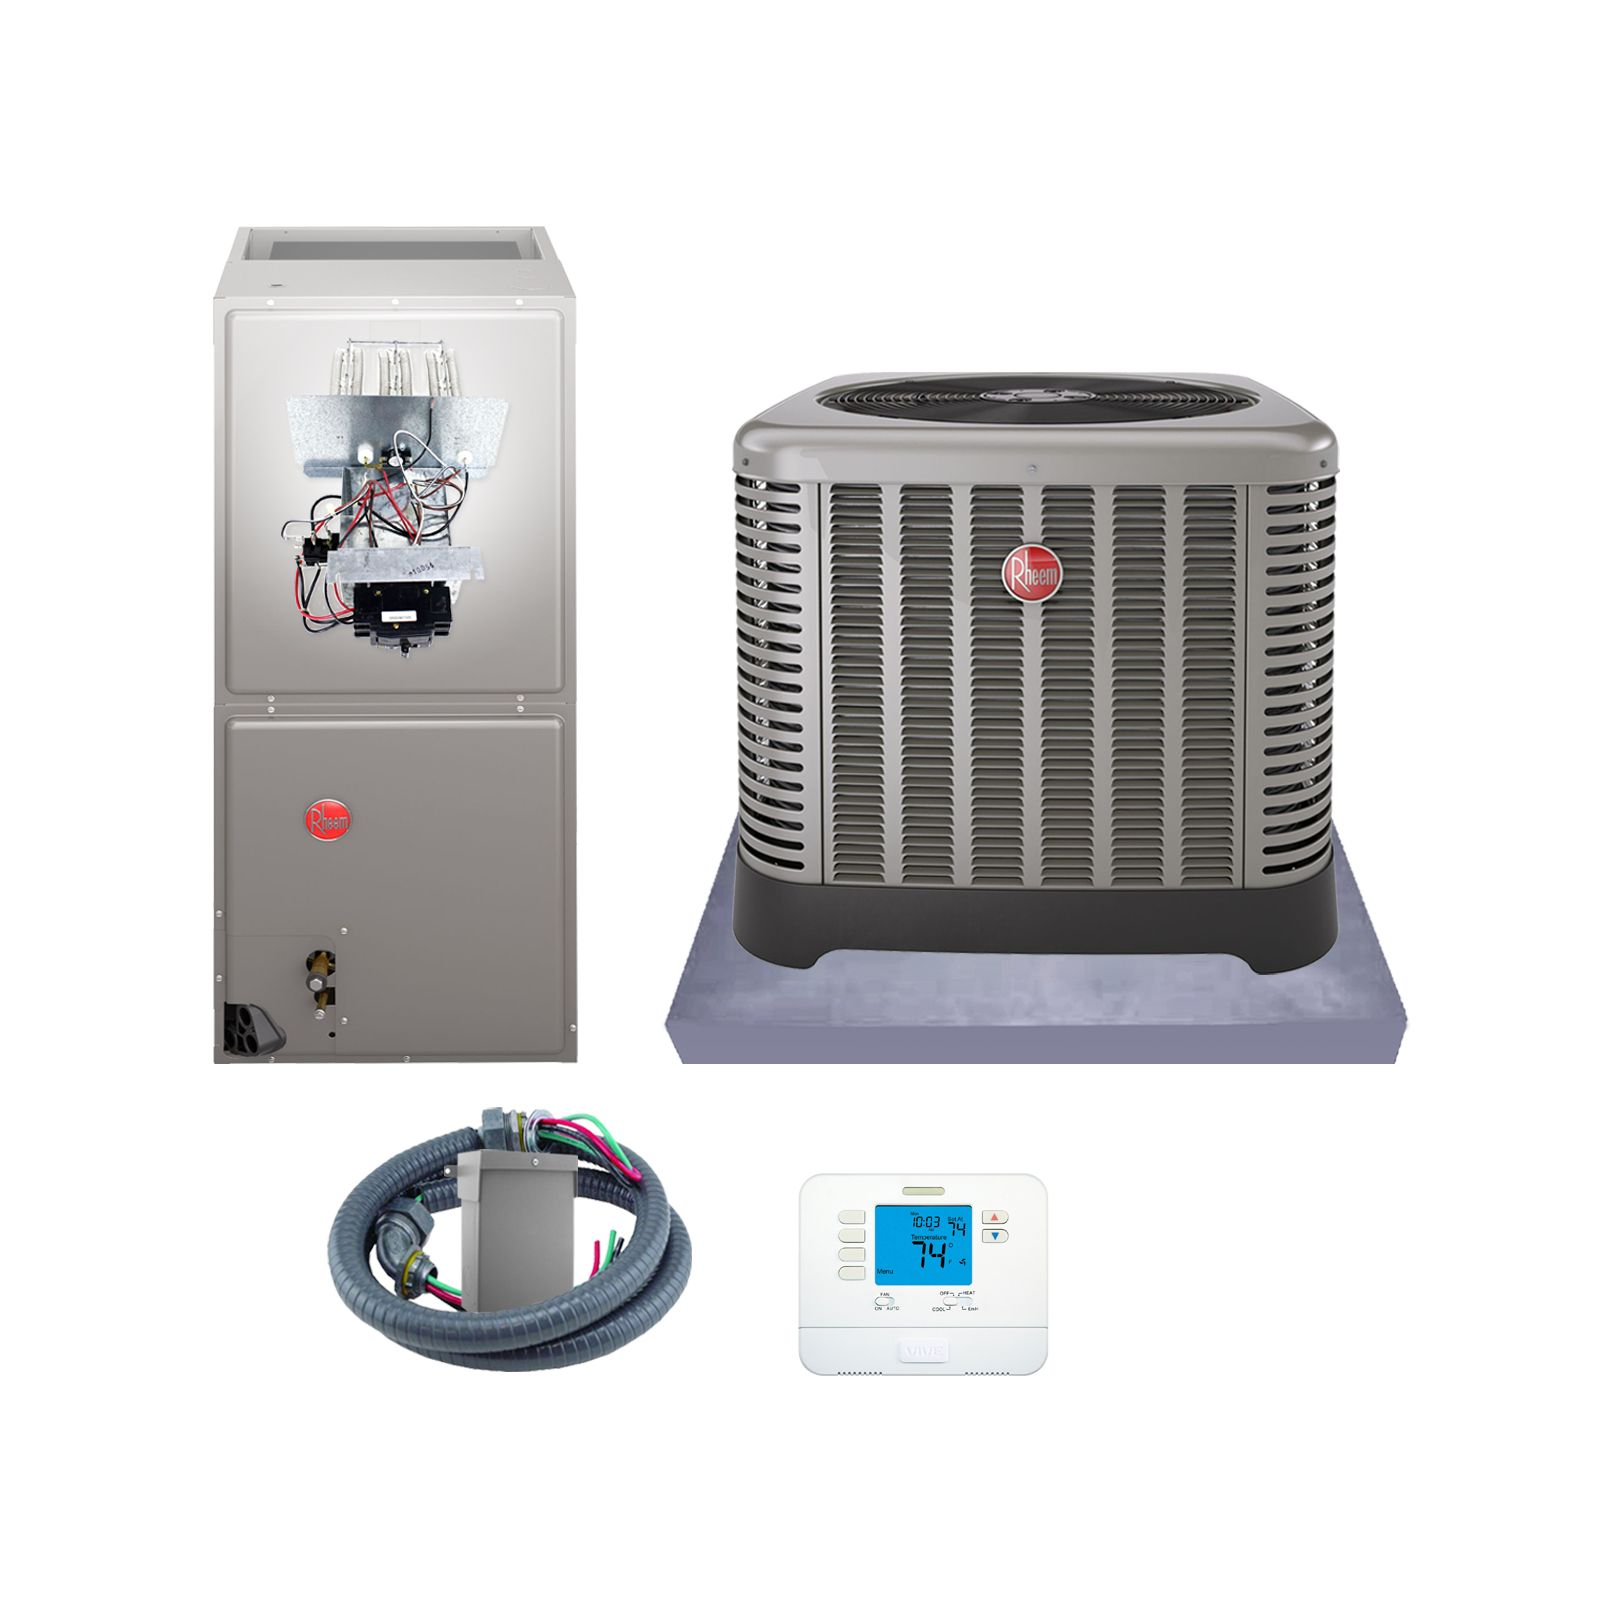 Rheem (AHRI 7509020) 2 Ton, 15 SEER/12.5 EER Classic Series, Heat Pump Split System and Install Kit